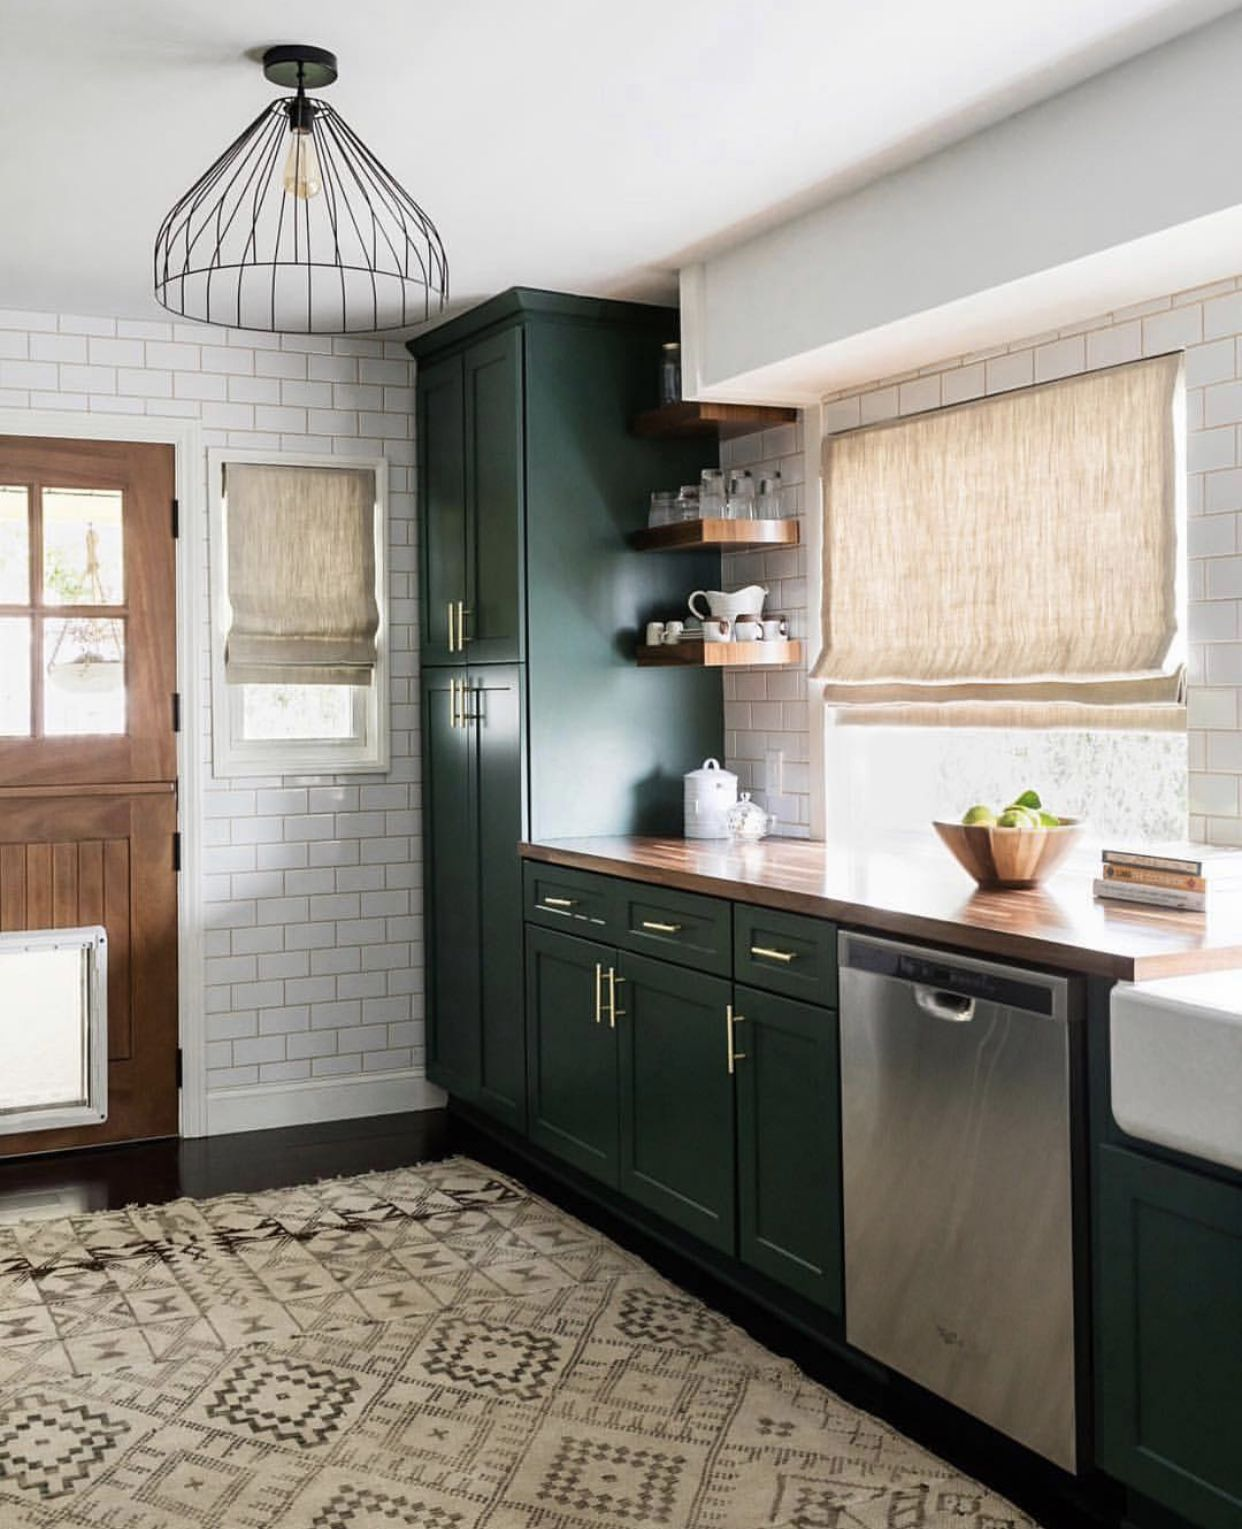 Pin by Chelsea Geesa on Home ideas in 2019 Simple